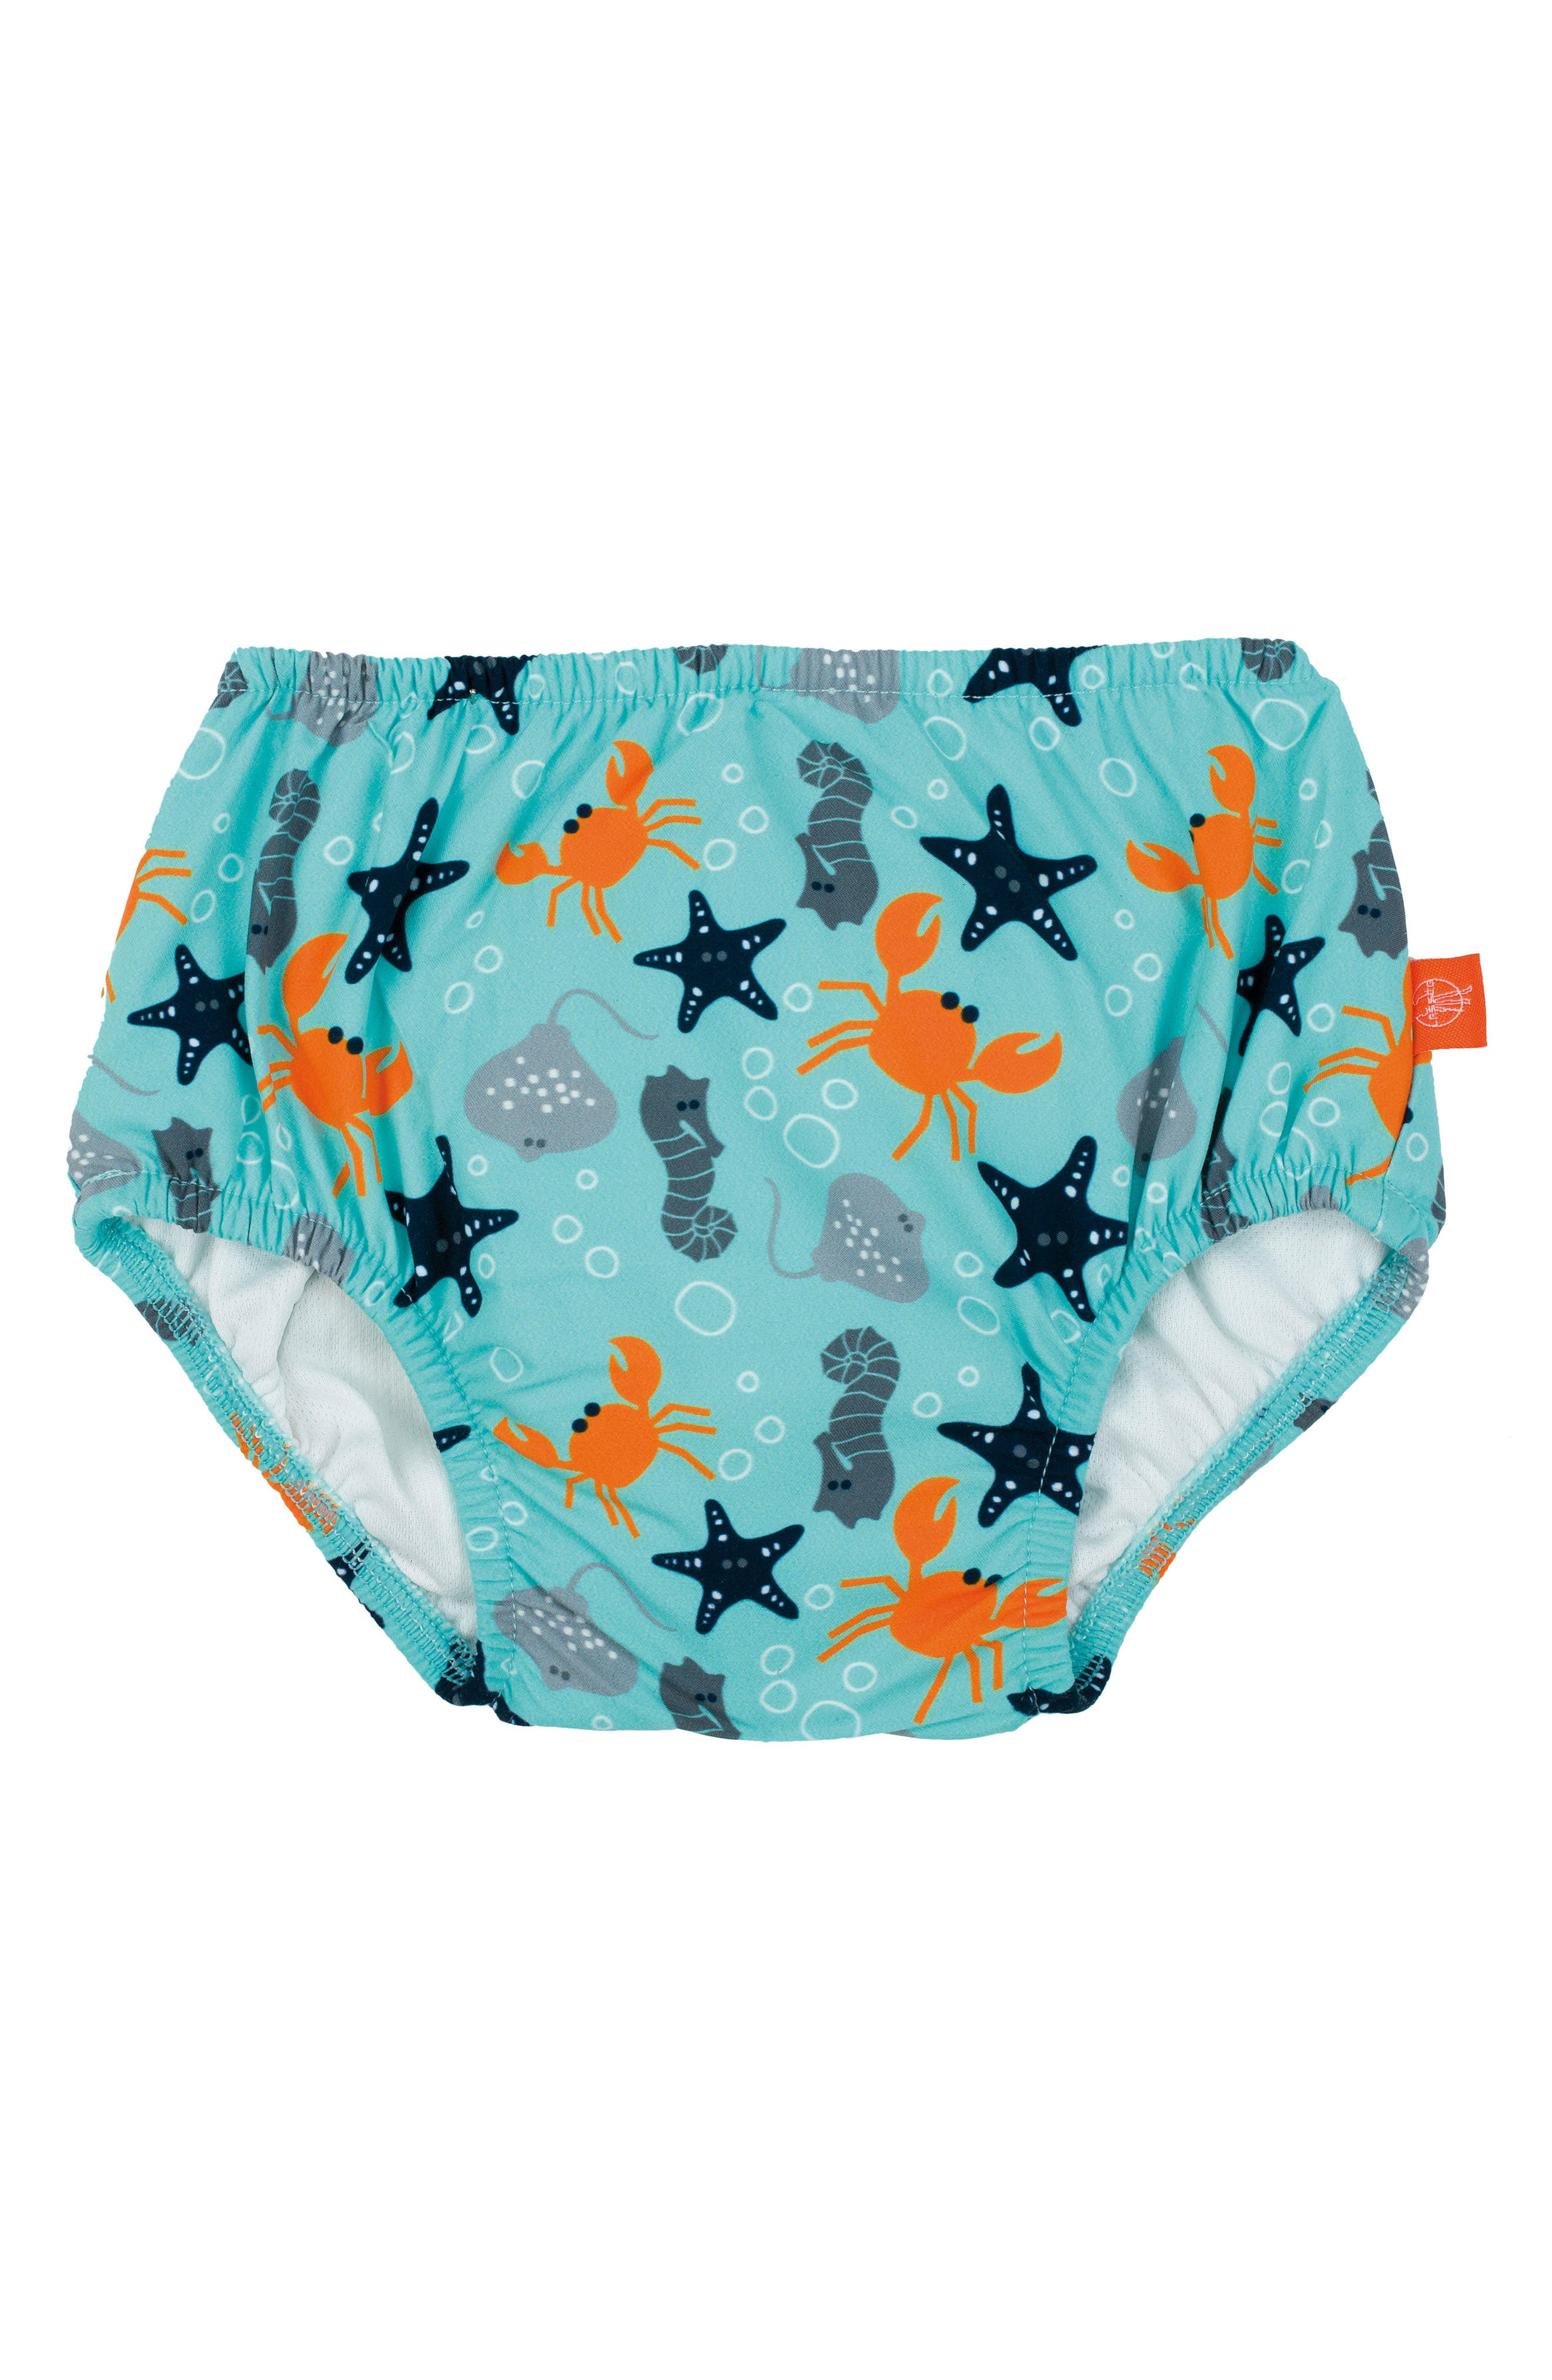 Star Fish Swim Diaper Cover,                             Main thumbnail 1, color,                             Light Blue Orange Grey Navy